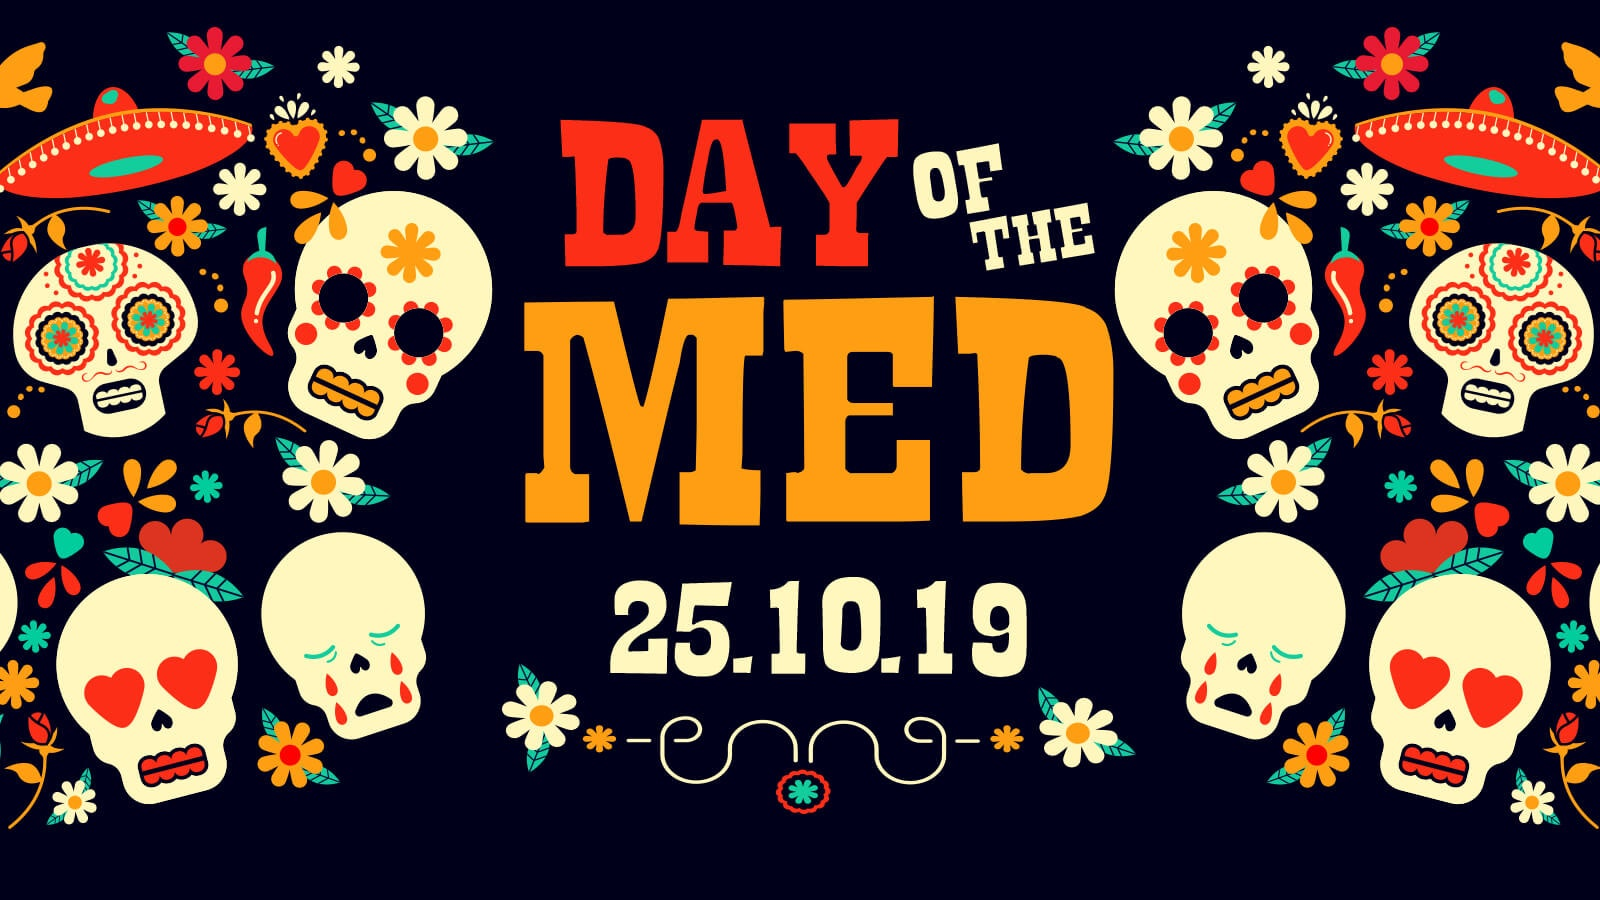 MEDICATION – DAY OF THE MED